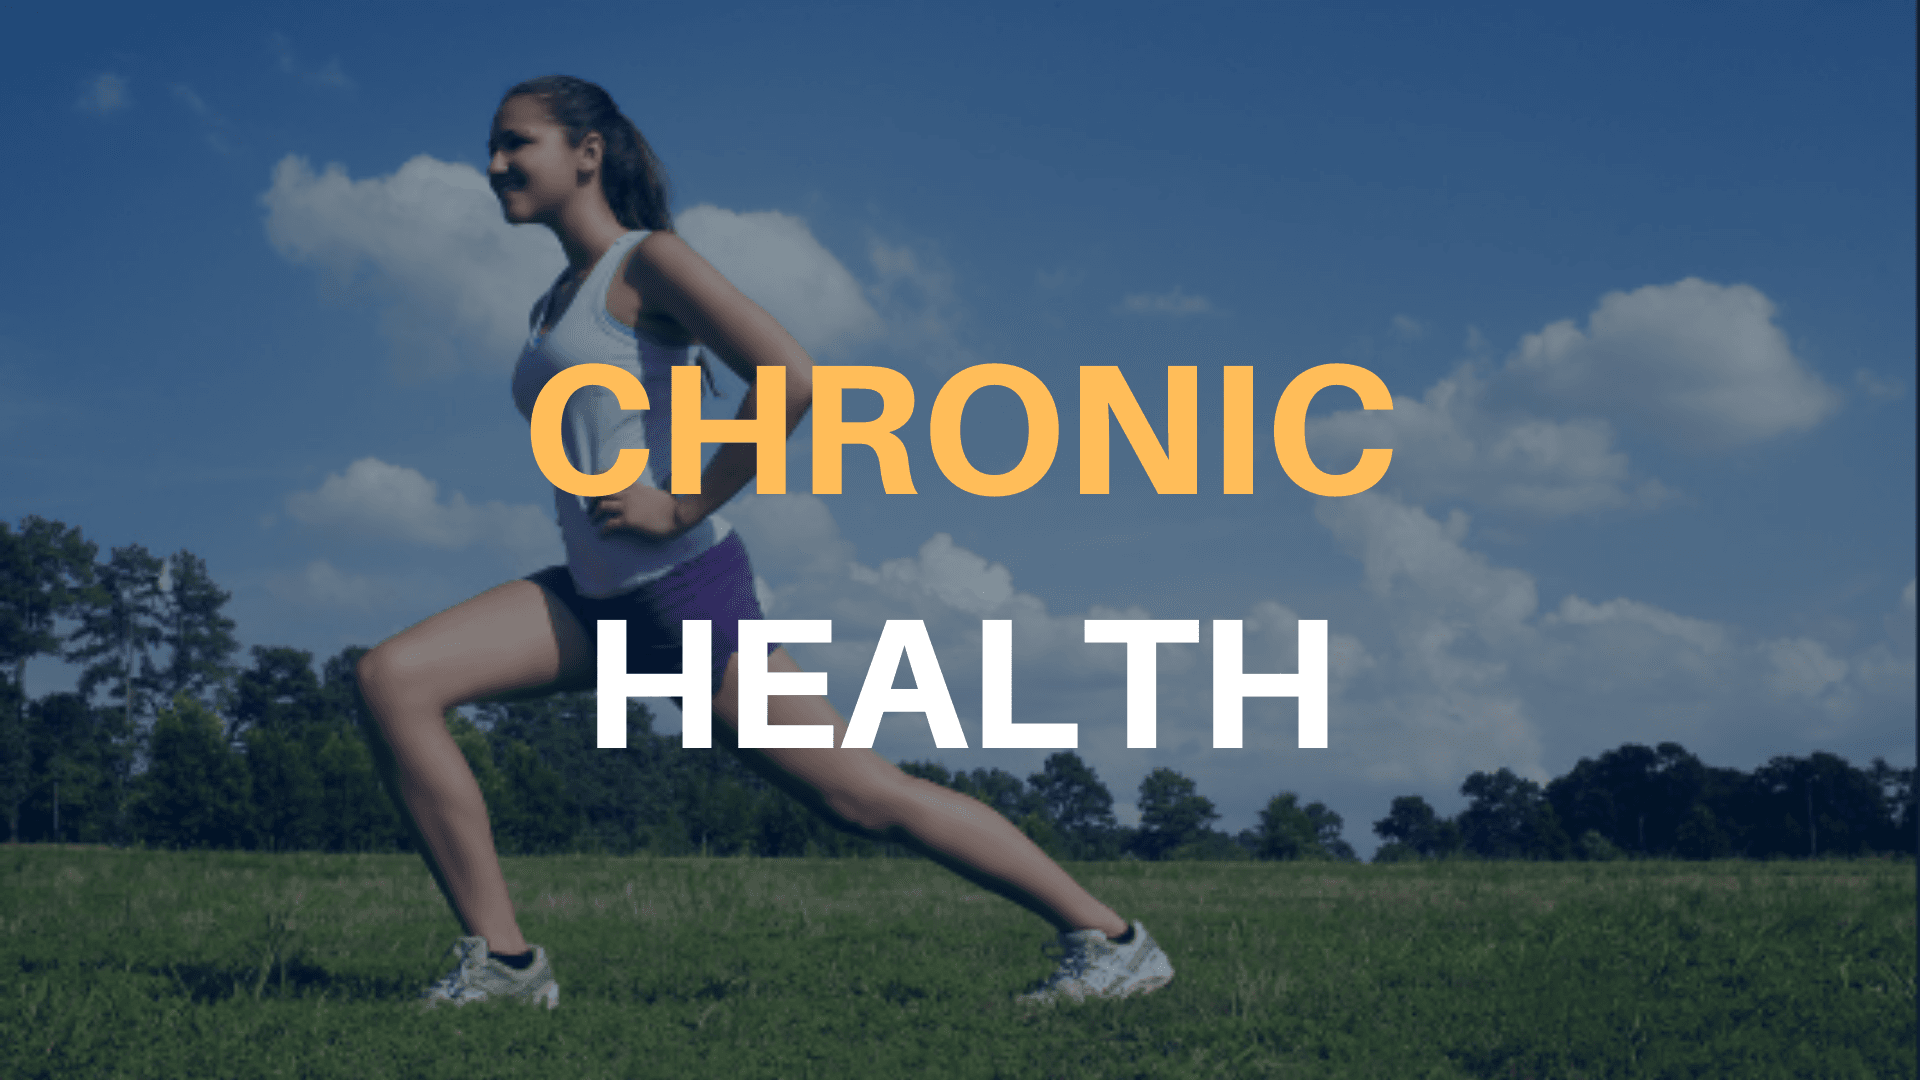 Chronic Health Opens in new window